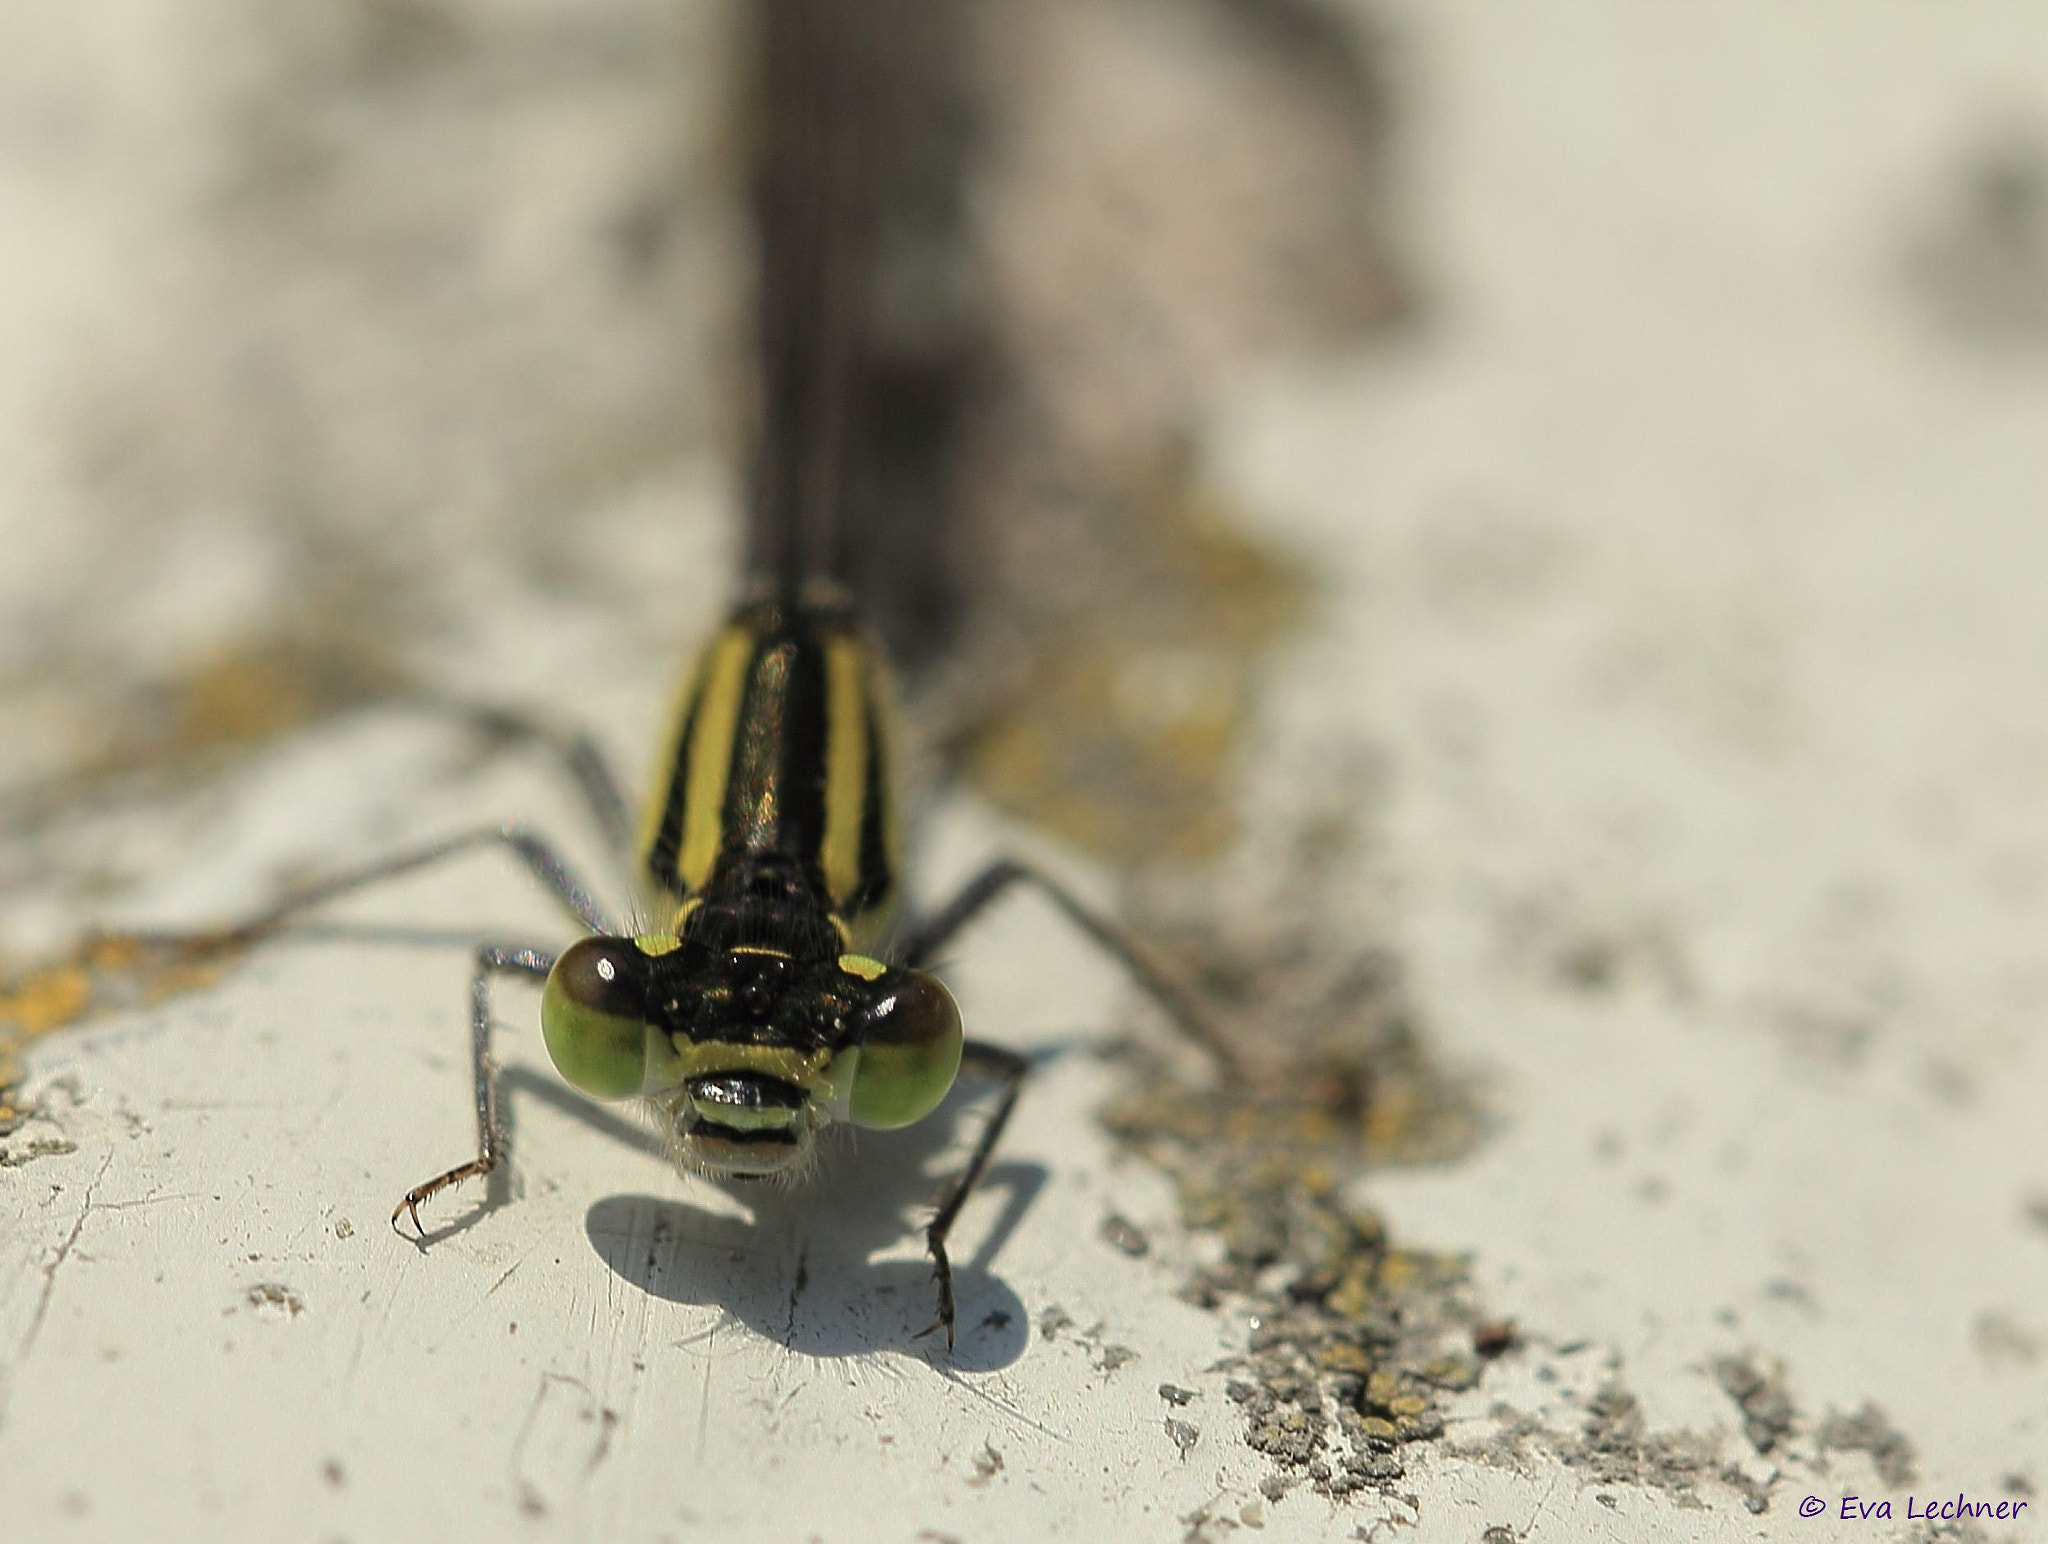 Photograph Dragonfly on a rock by Eva Lechner on 500px